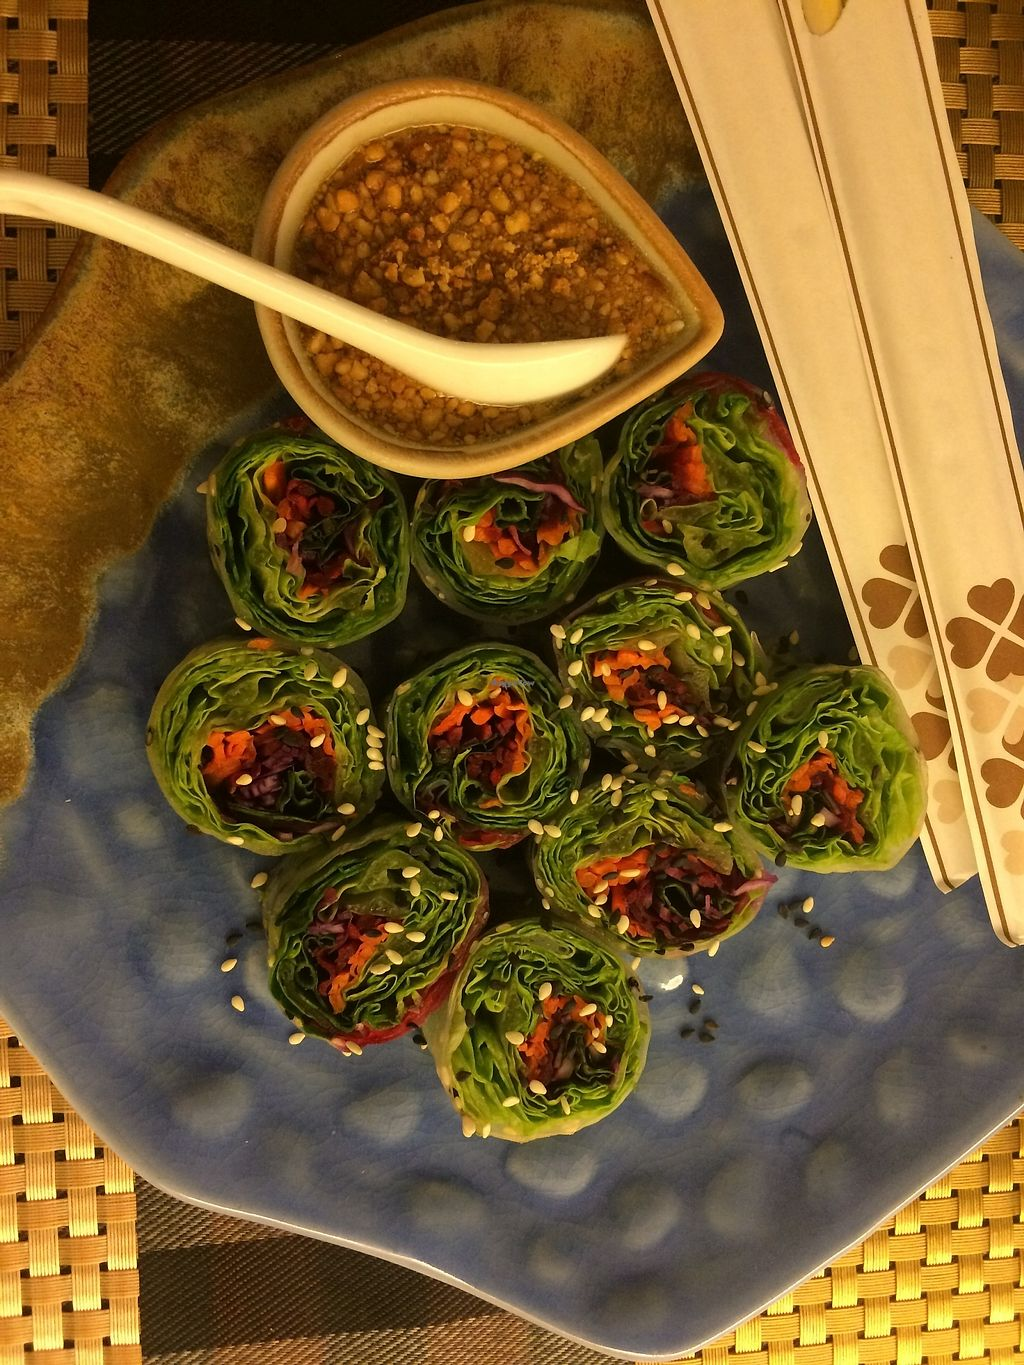 """Photo of May Veggie Home  by <a href=""""/members/profile/Megsriley_82"""">Megsriley_82</a> <br/>Vietnamese spring rolls with peanut sauce  <br/> April 2, 2018  - <a href='/contact/abuse/image/28511/379744'>Report</a>"""